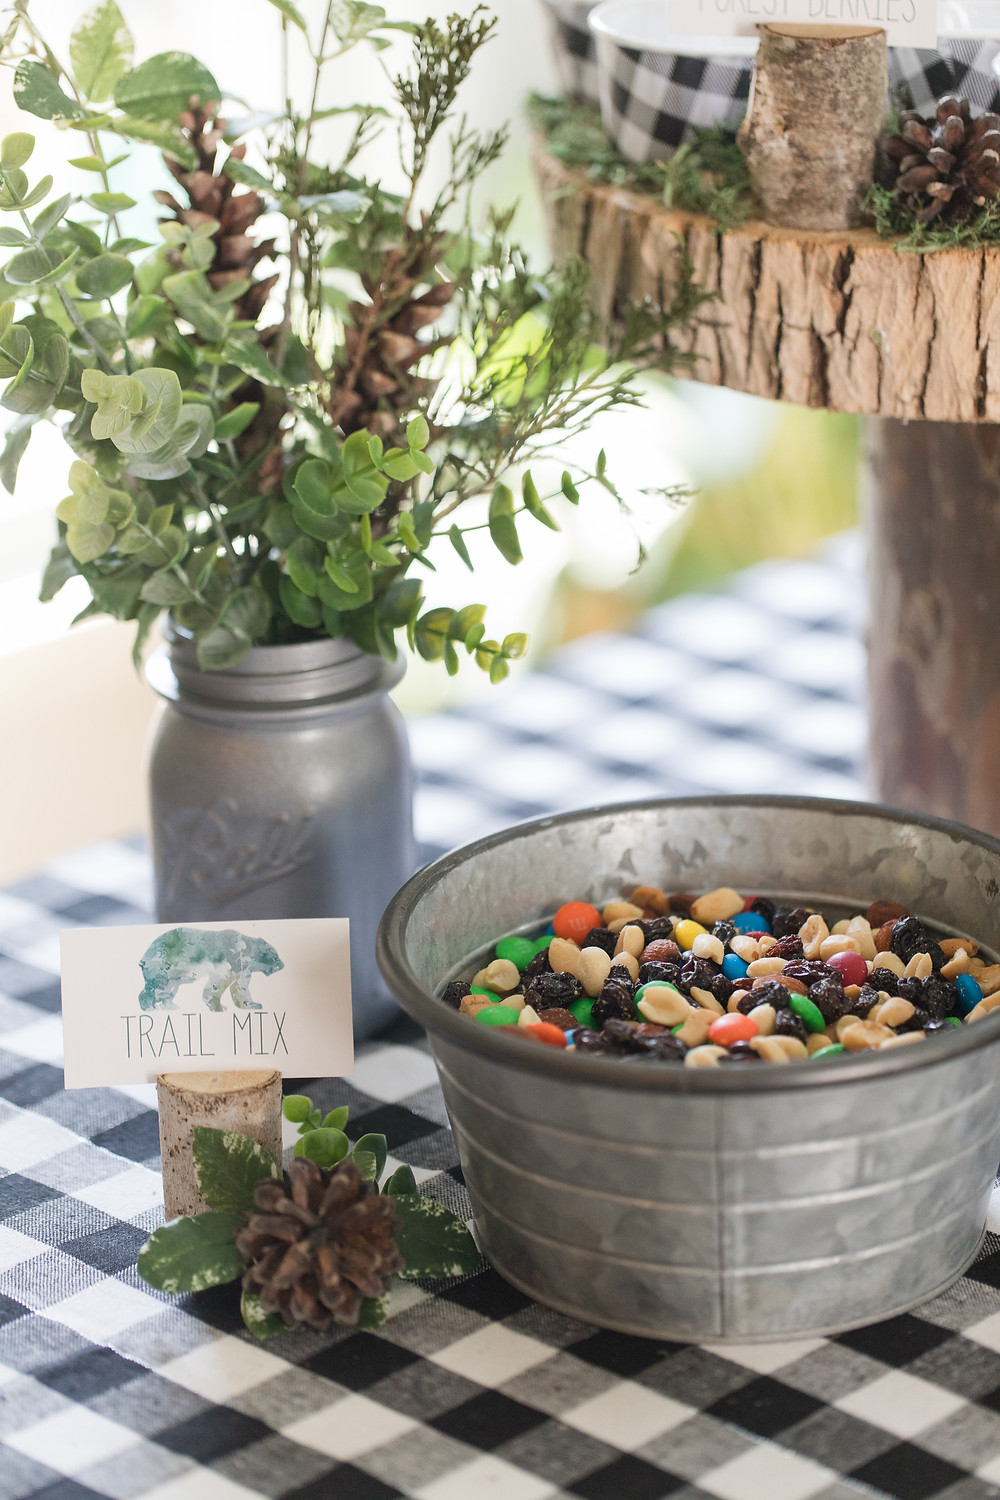 Trail Mix - One Wild Year - Boy's 1st Birthday Party - Ideas, inspiration, decor, party food and menu, kids activities and games, cake smash photo session, bear theme, wild one wilderness theme, decorations, cake, cookies, and more!